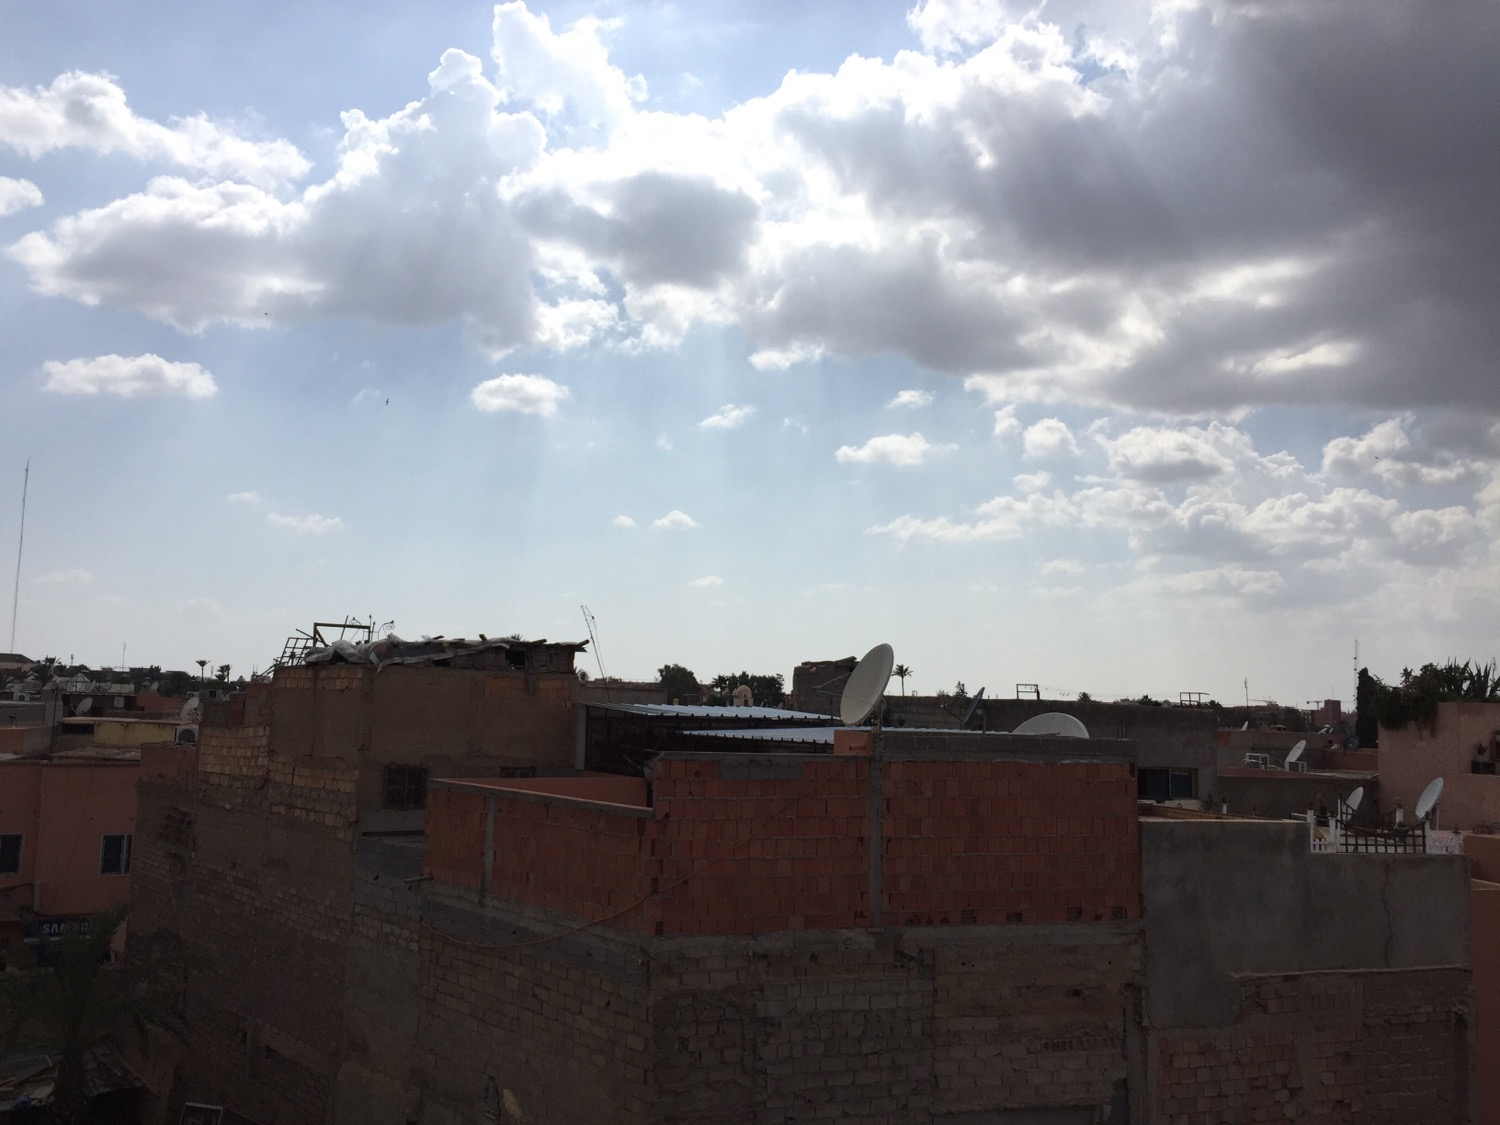 On a rooftop in Marrakech.